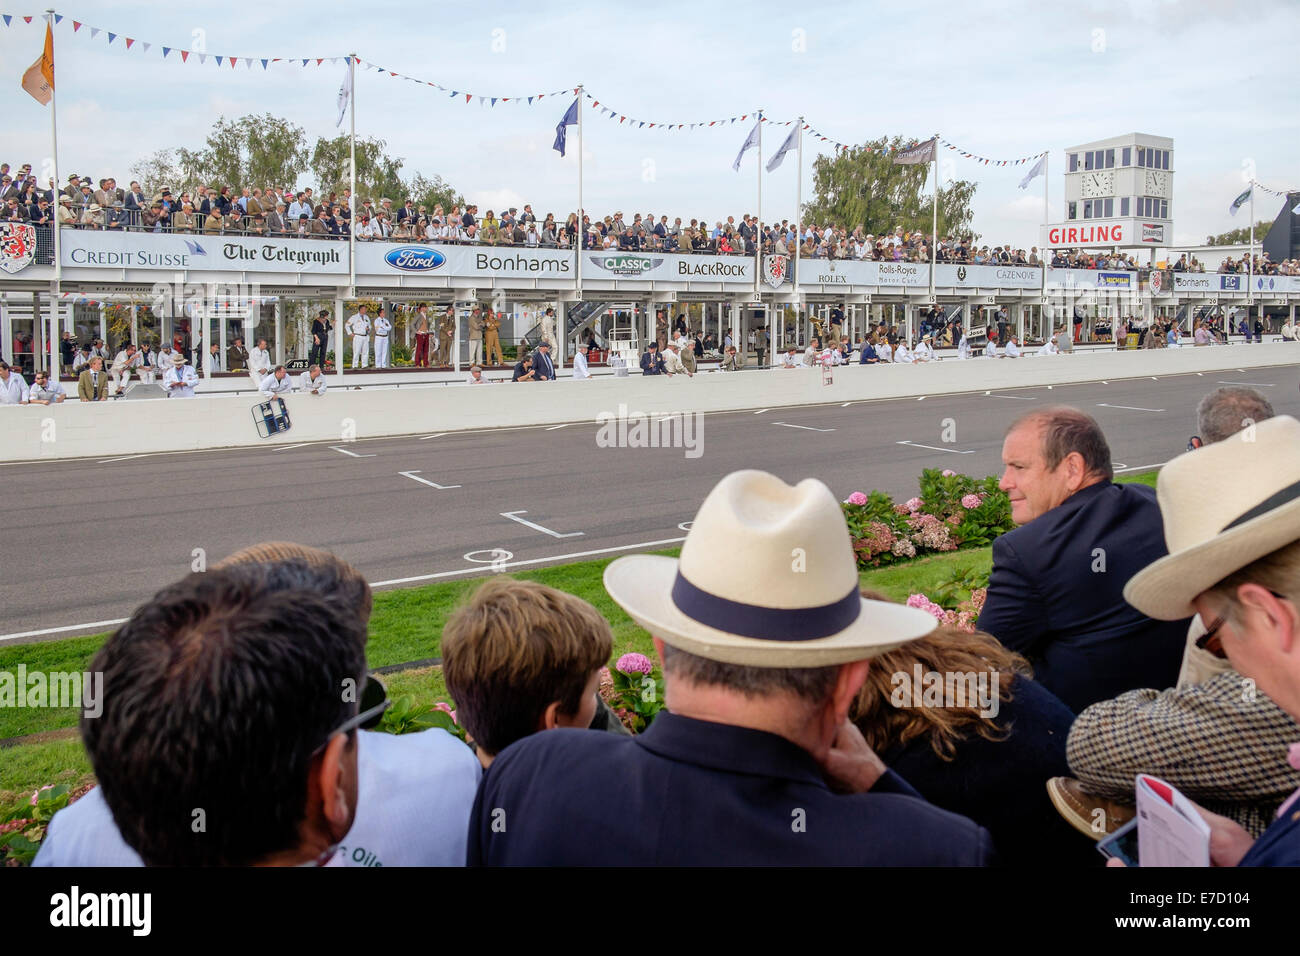 Chichester, West Sussex UK. Sunday 14th September 2014. Goodwood revival, Goodwood motor circuit, showing the crowds Stock Photo